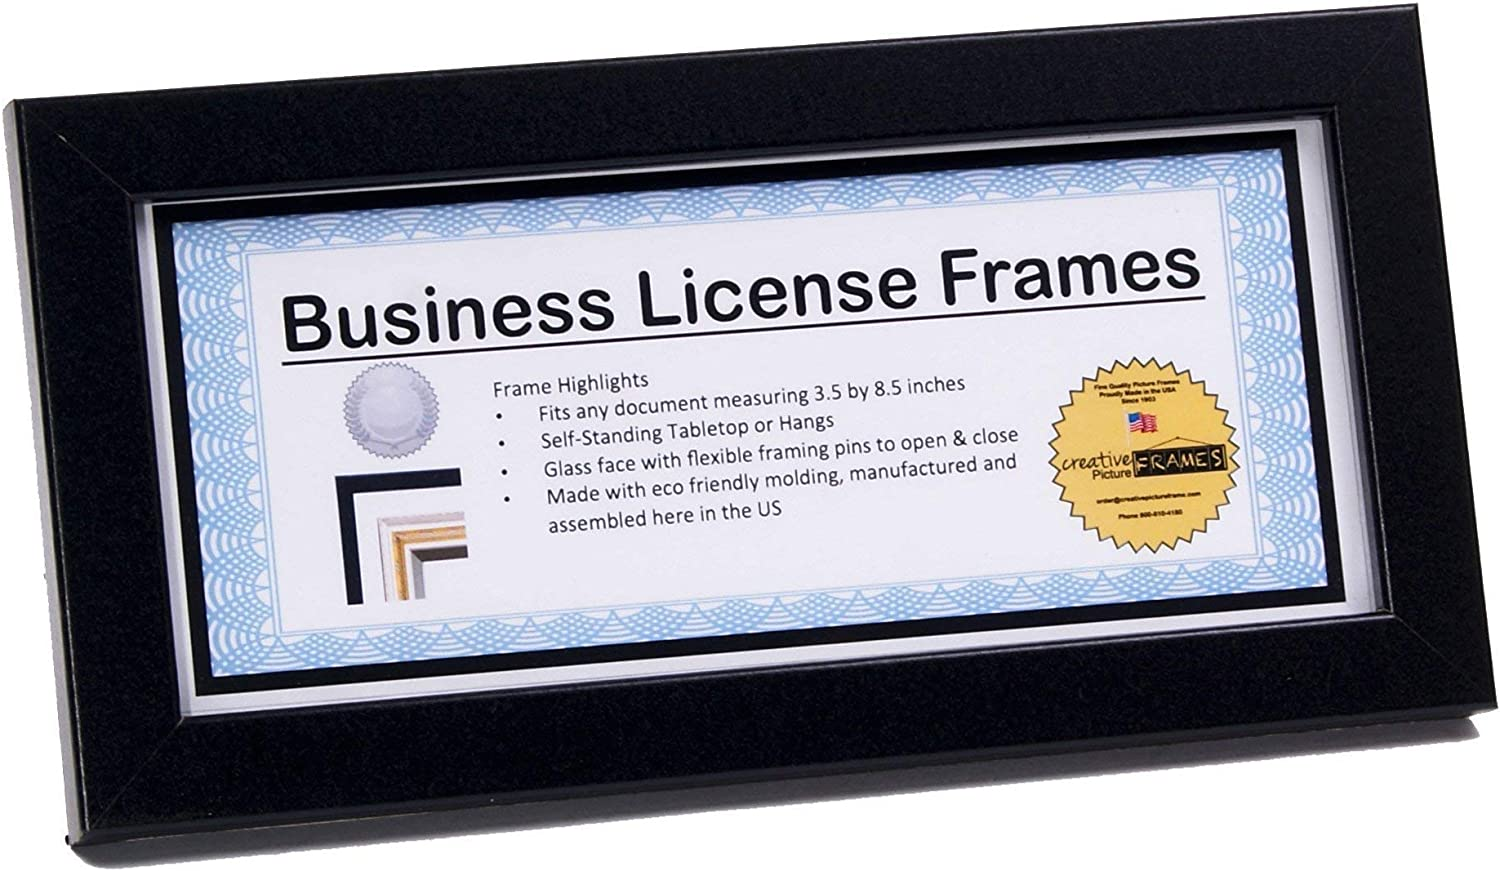 CreativePF [4x9bk] Black Business License Frames Holds 4 by 9-inch, Self-Standing with Hanger